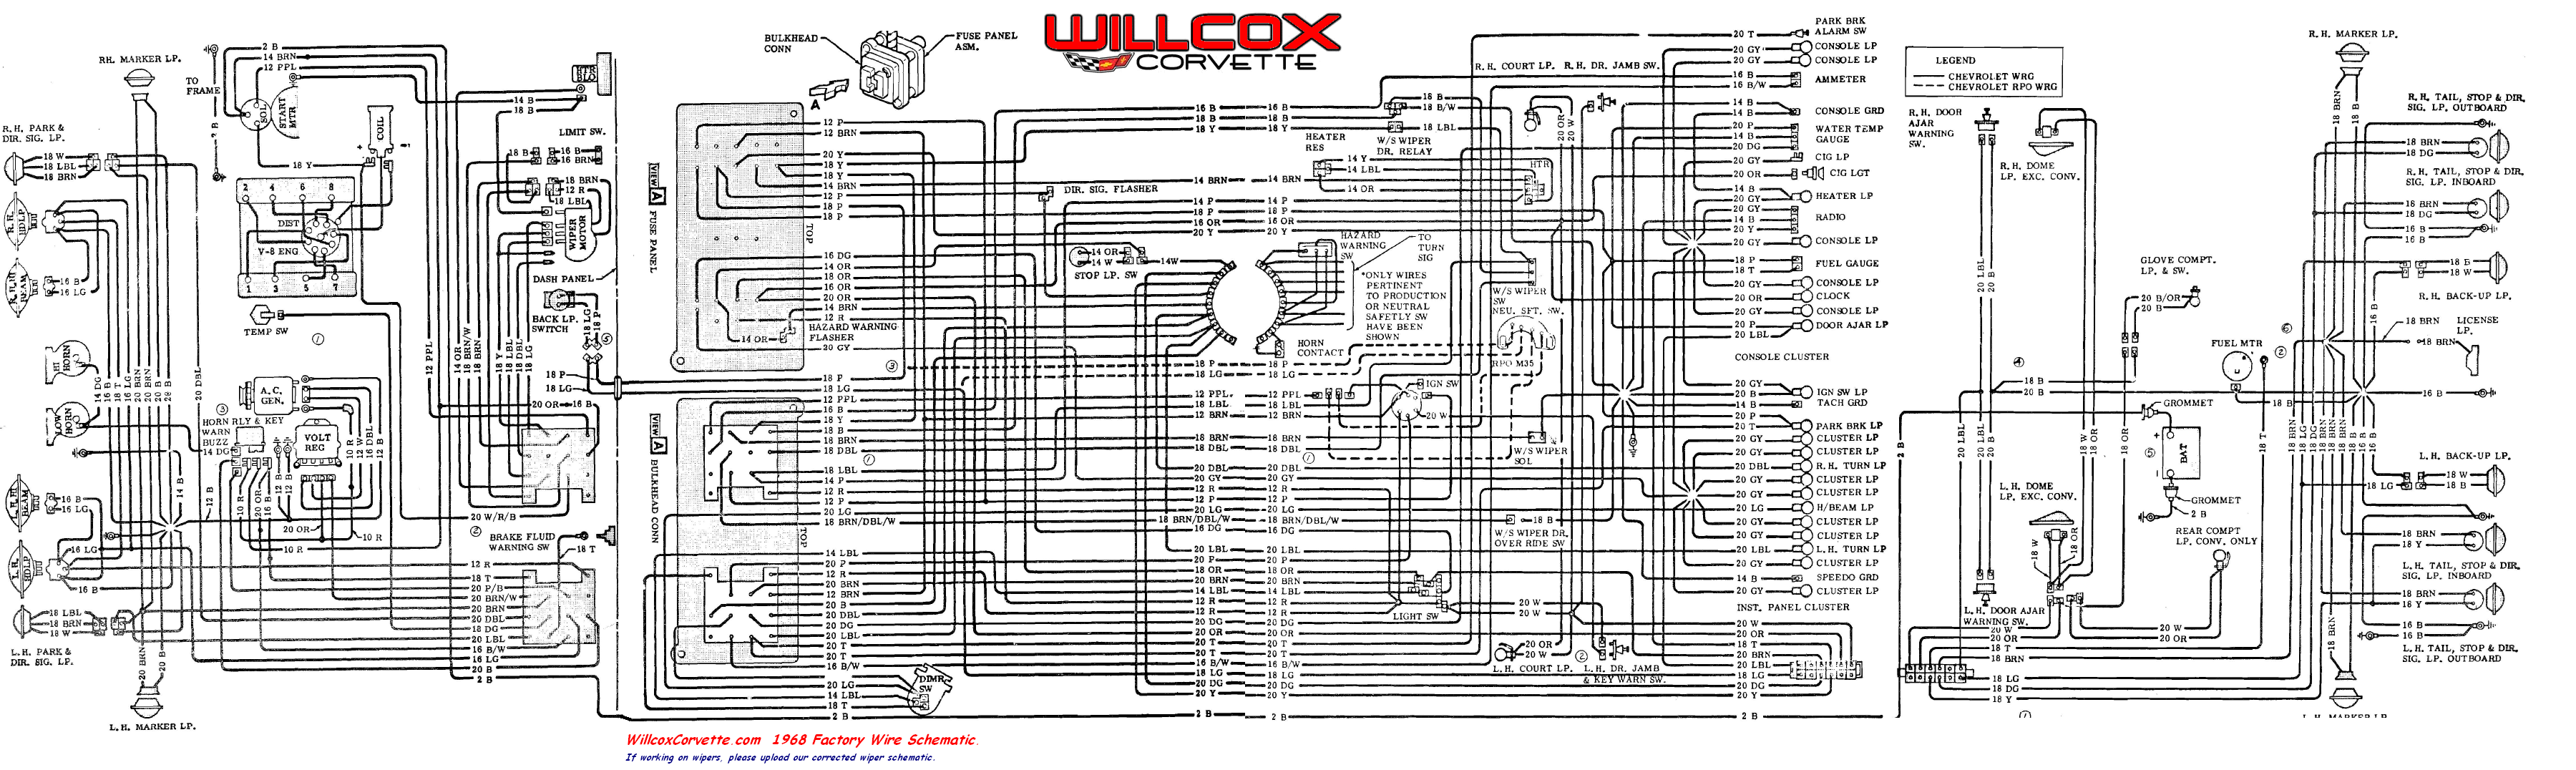 c5 stereo wiring diagram? – corvetteforum – chevrolet corvette, Wiring diagram